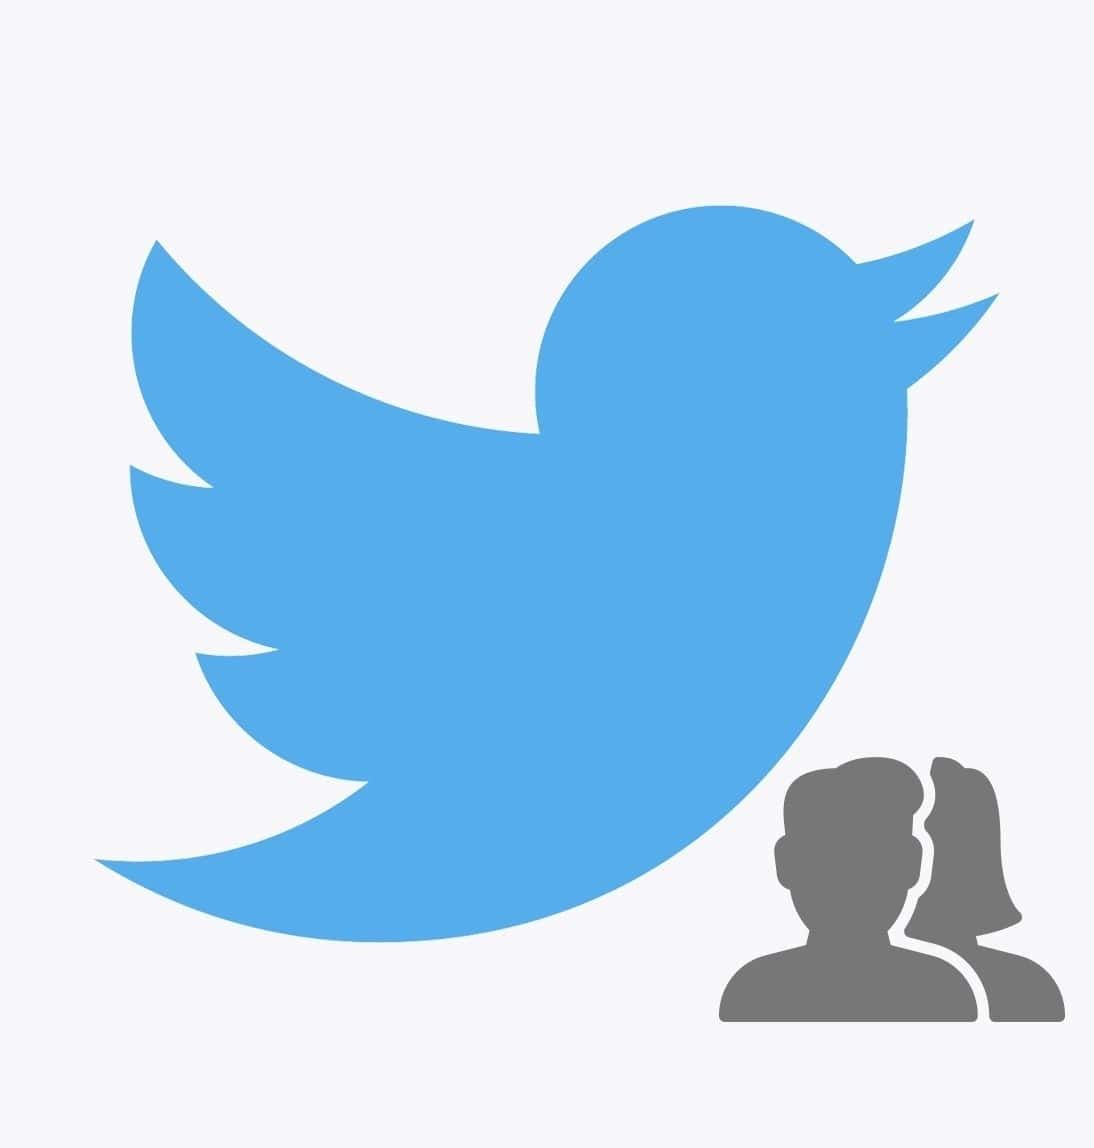 How to get followers on twitter, how to gain followers on twitter, how to get twitter followers